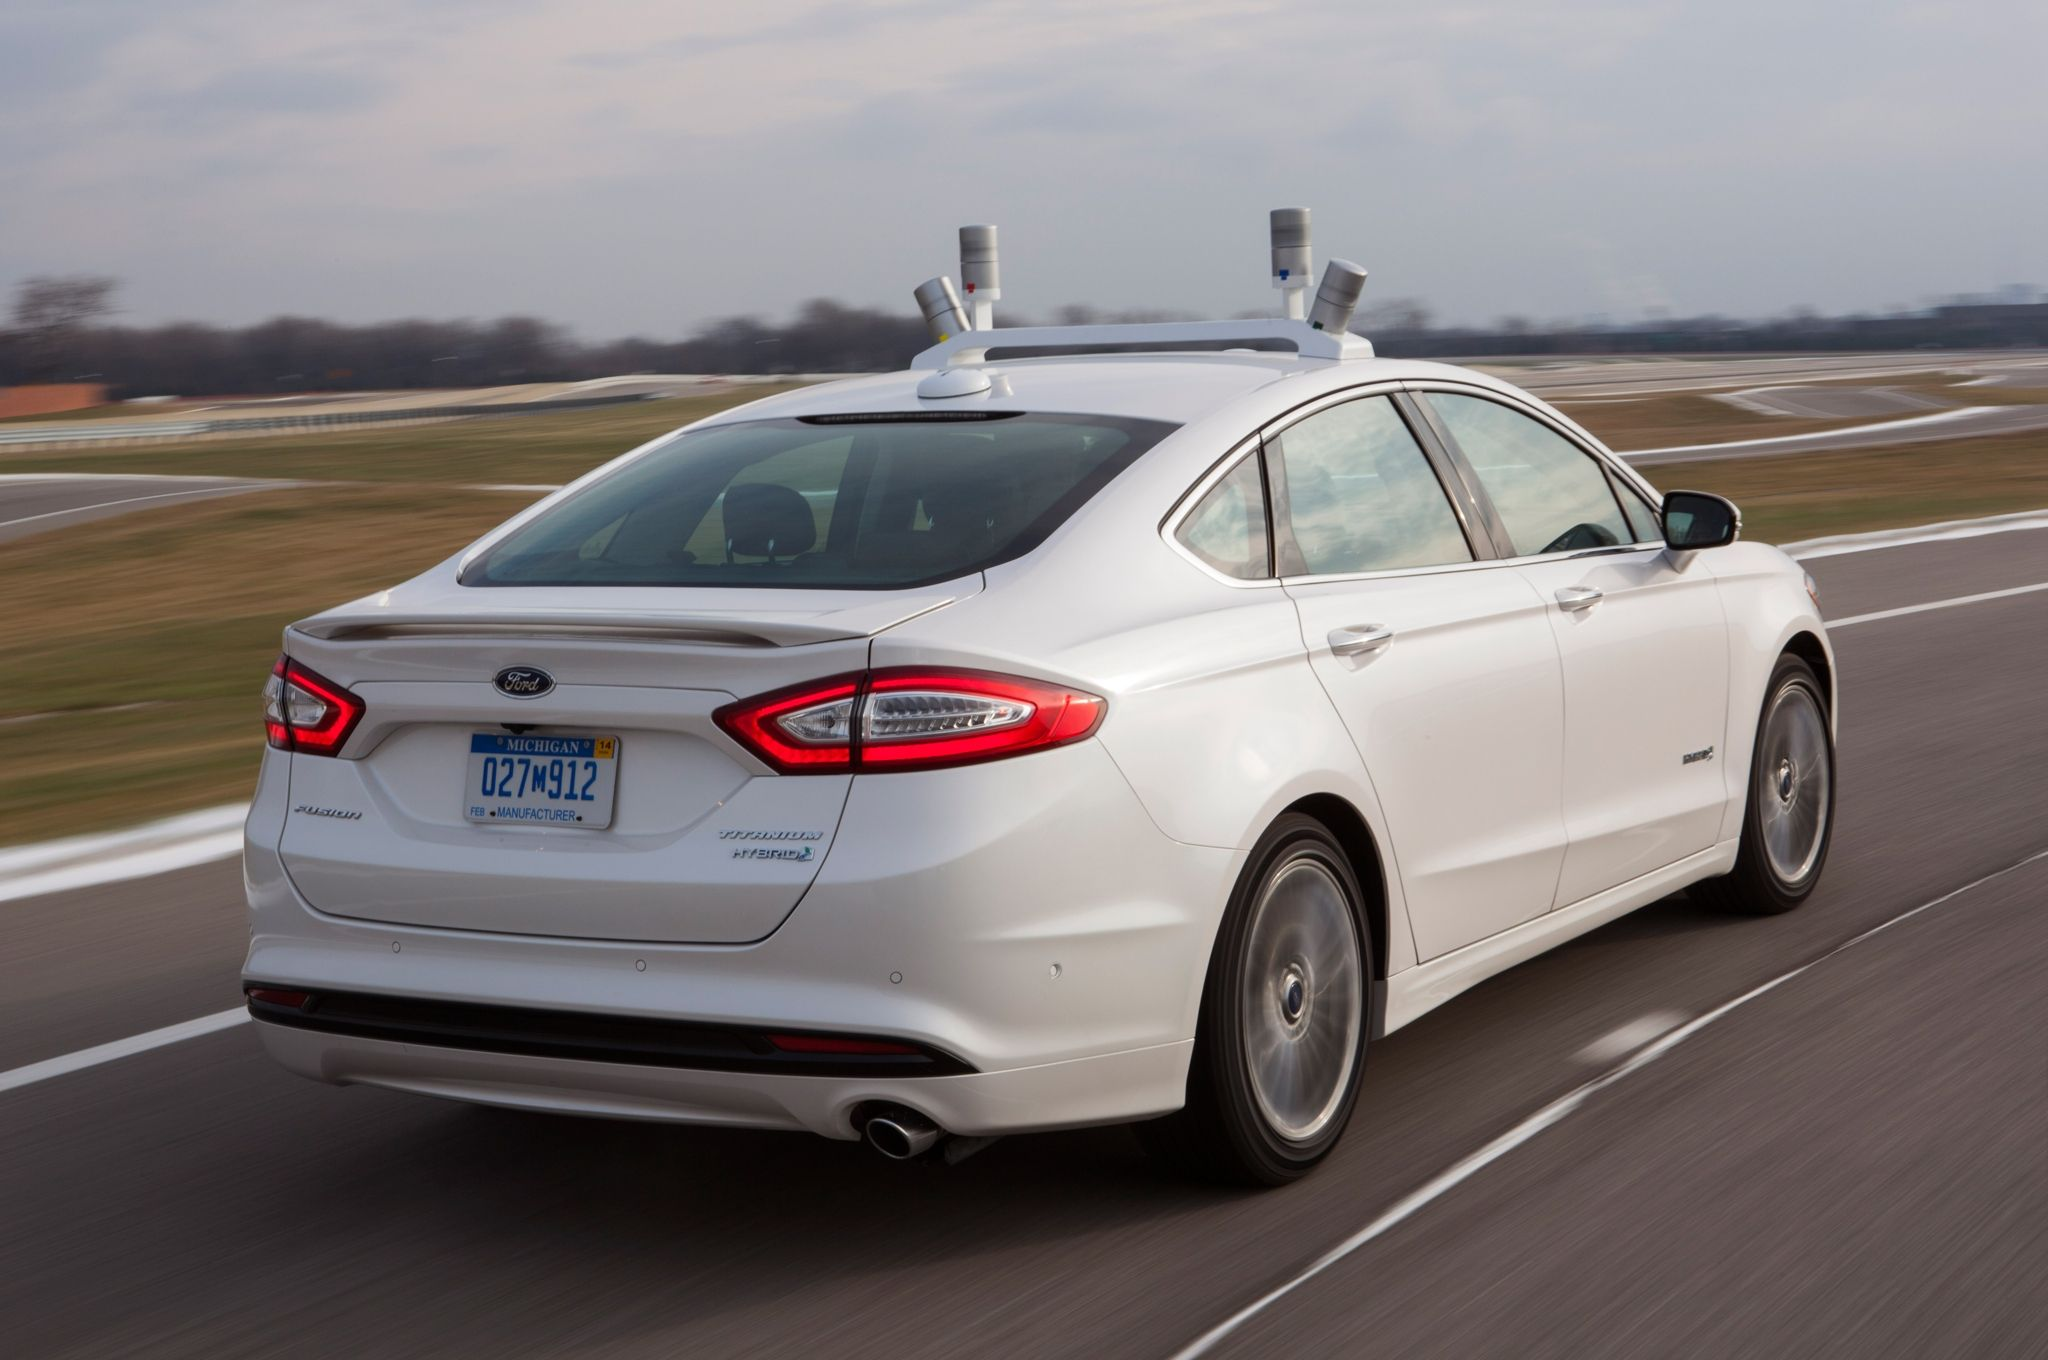 2016 ford fusion hybrid rear photo